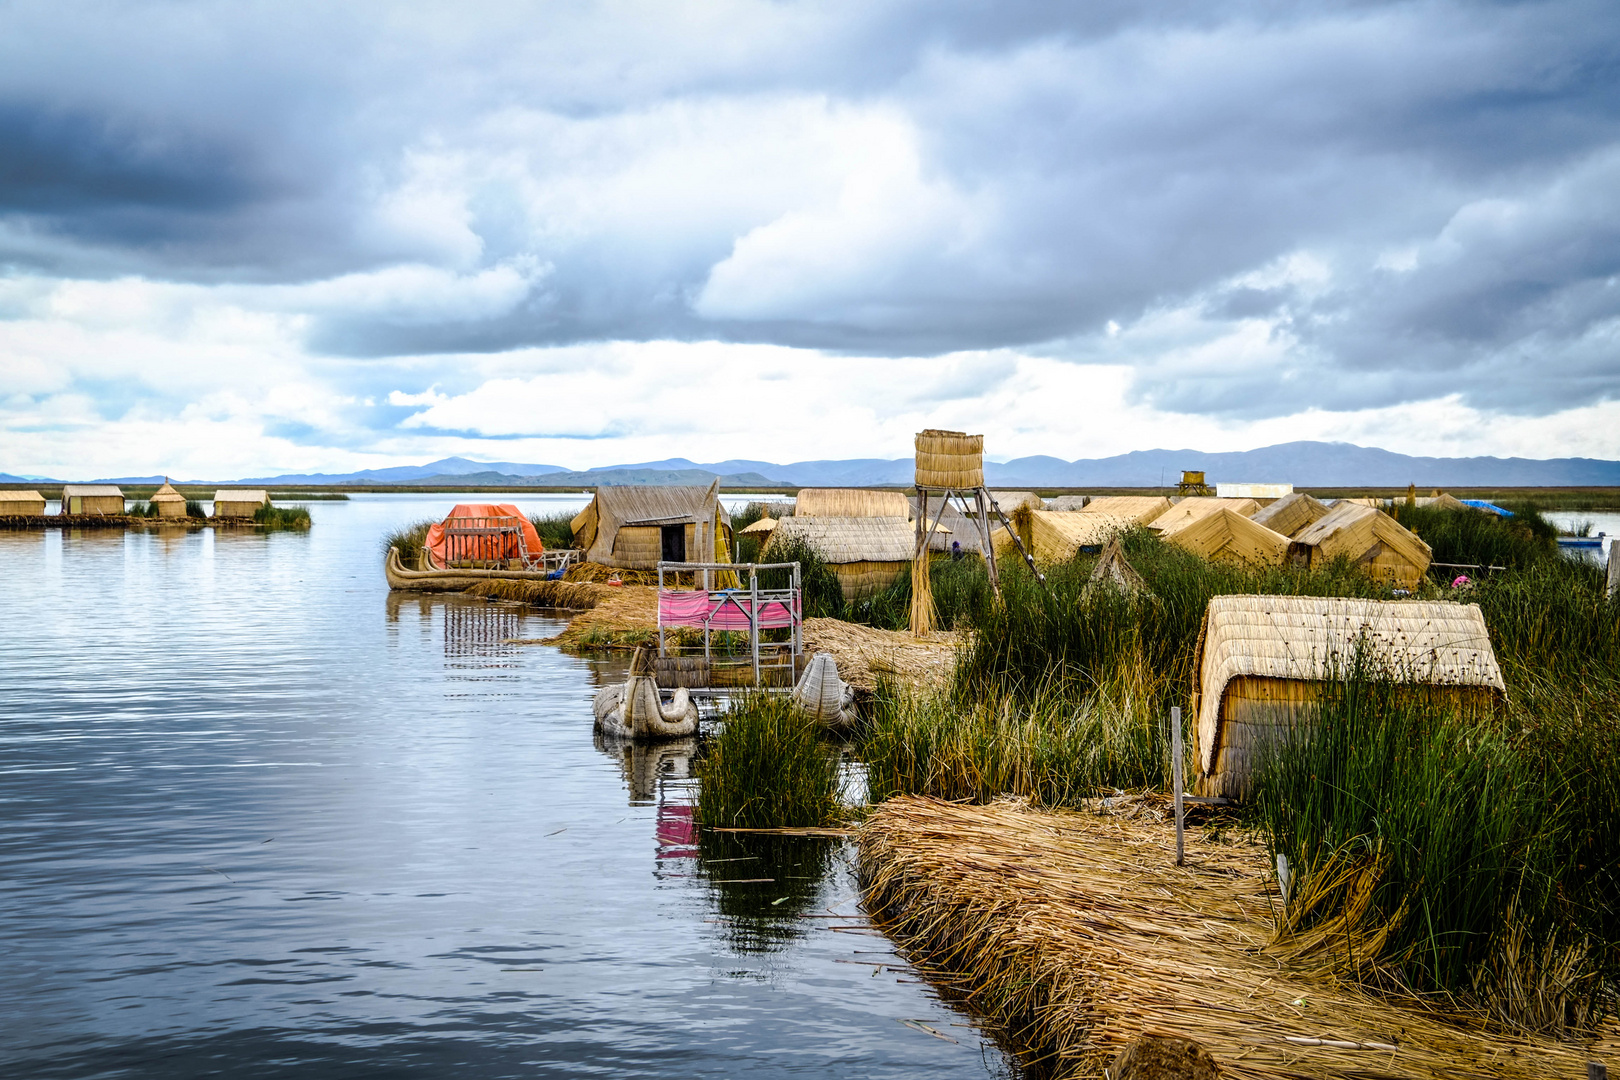 Floating Village on Titicaca Lake